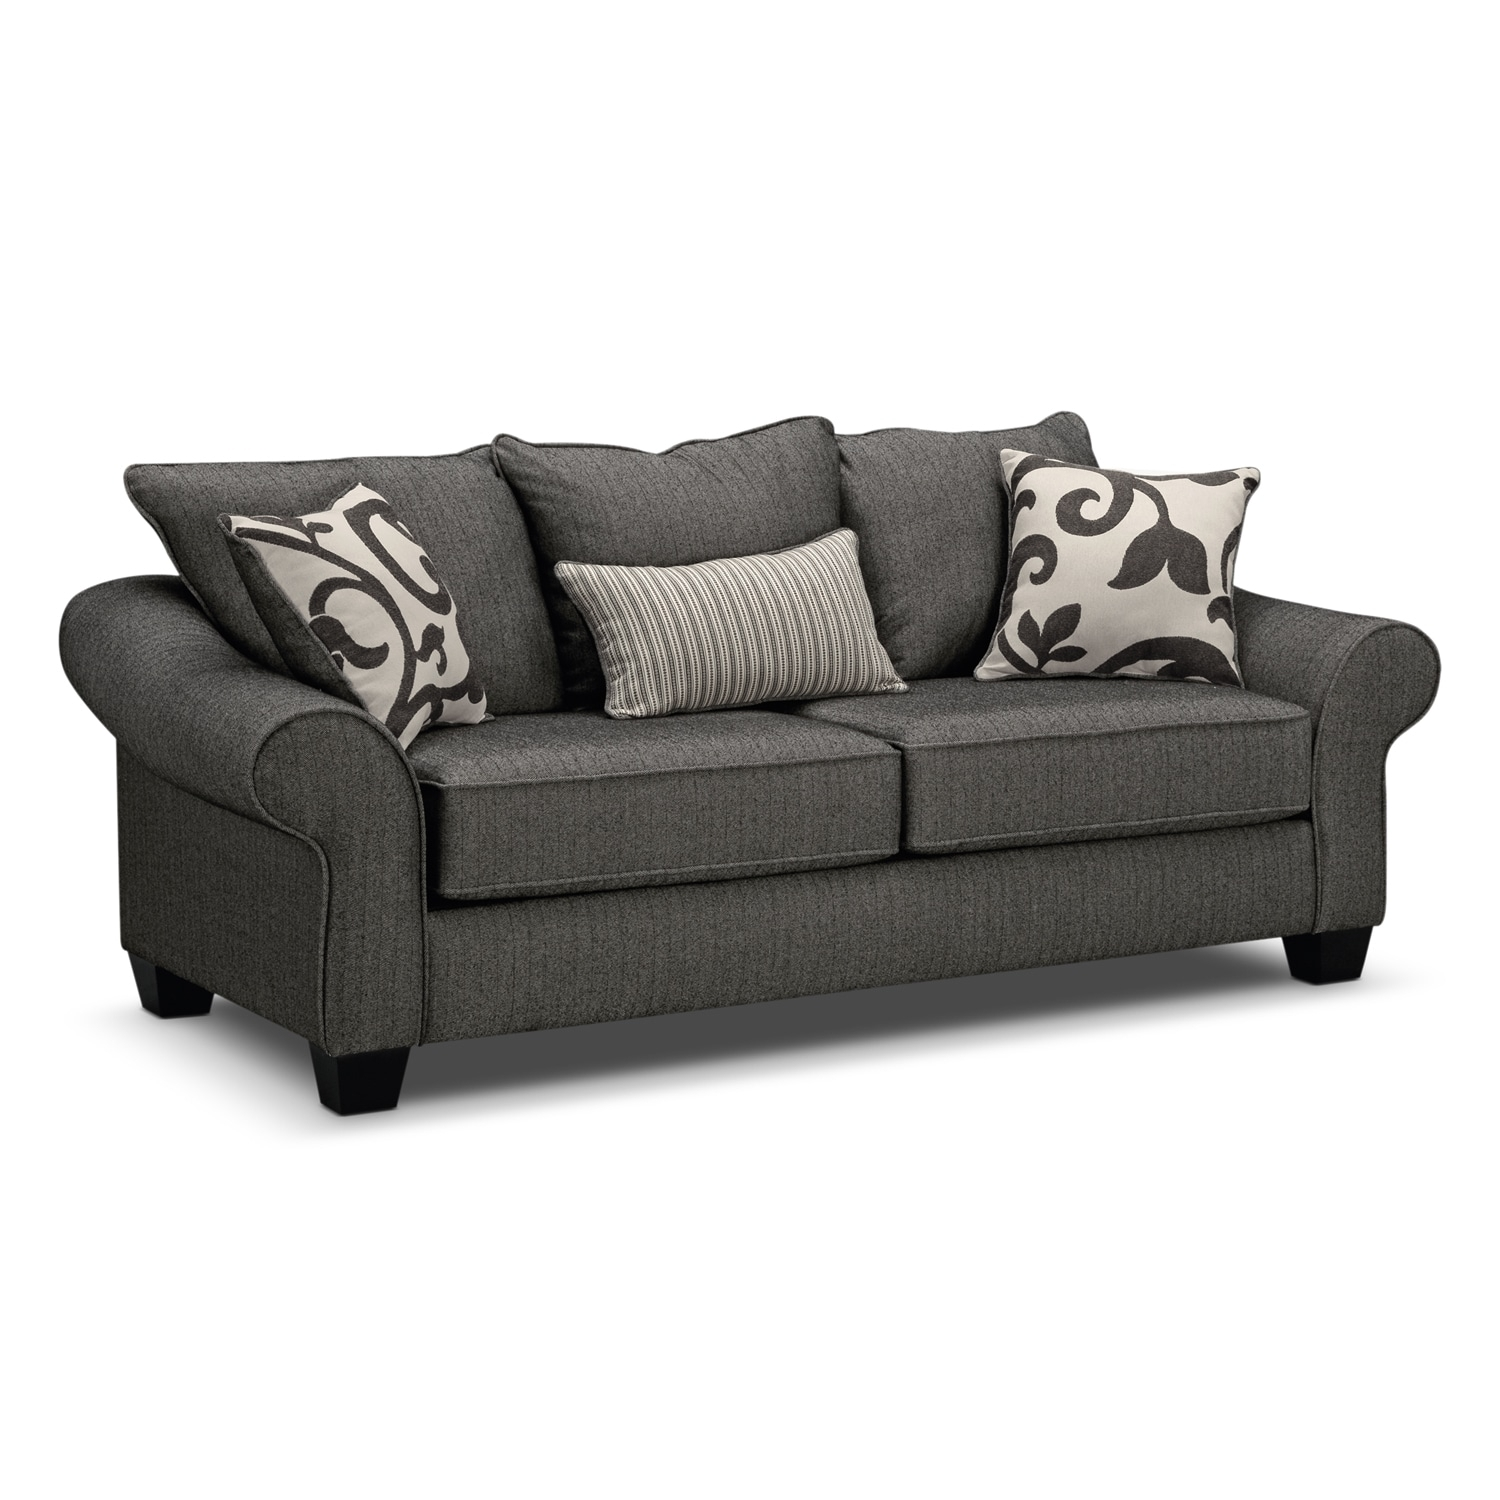 Sofas & Couches | Living Room Seating | Value City Furniture And Within Harrisburg Pa Sectional Sofas (View 8 of 10)